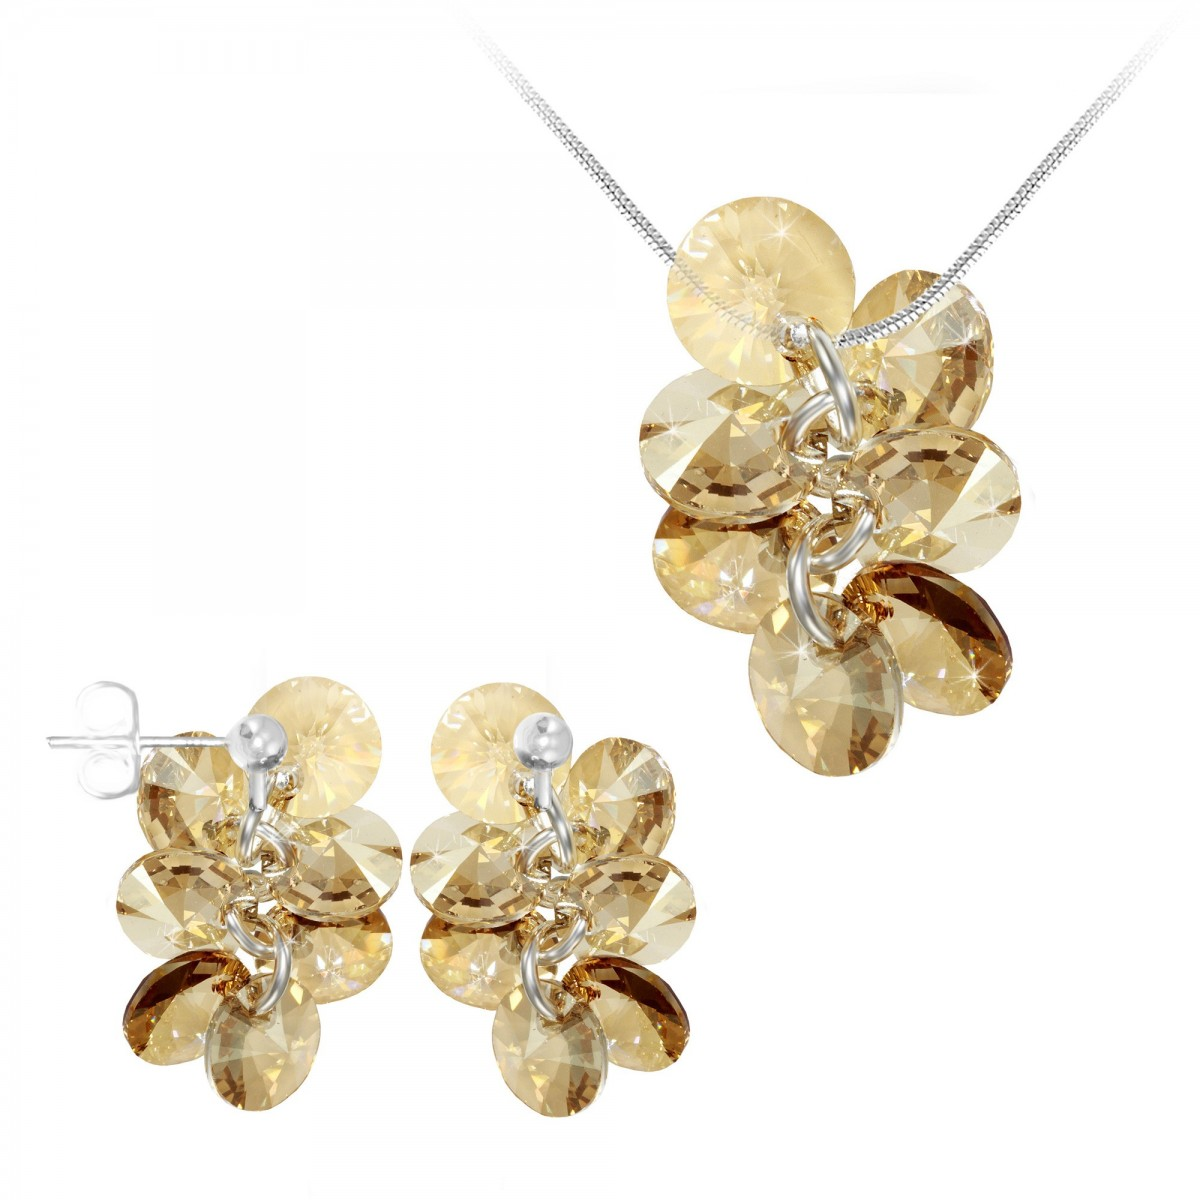 Parure collier et boucles d'oreilles mode So Charm made with Crystal from Swarovski golden